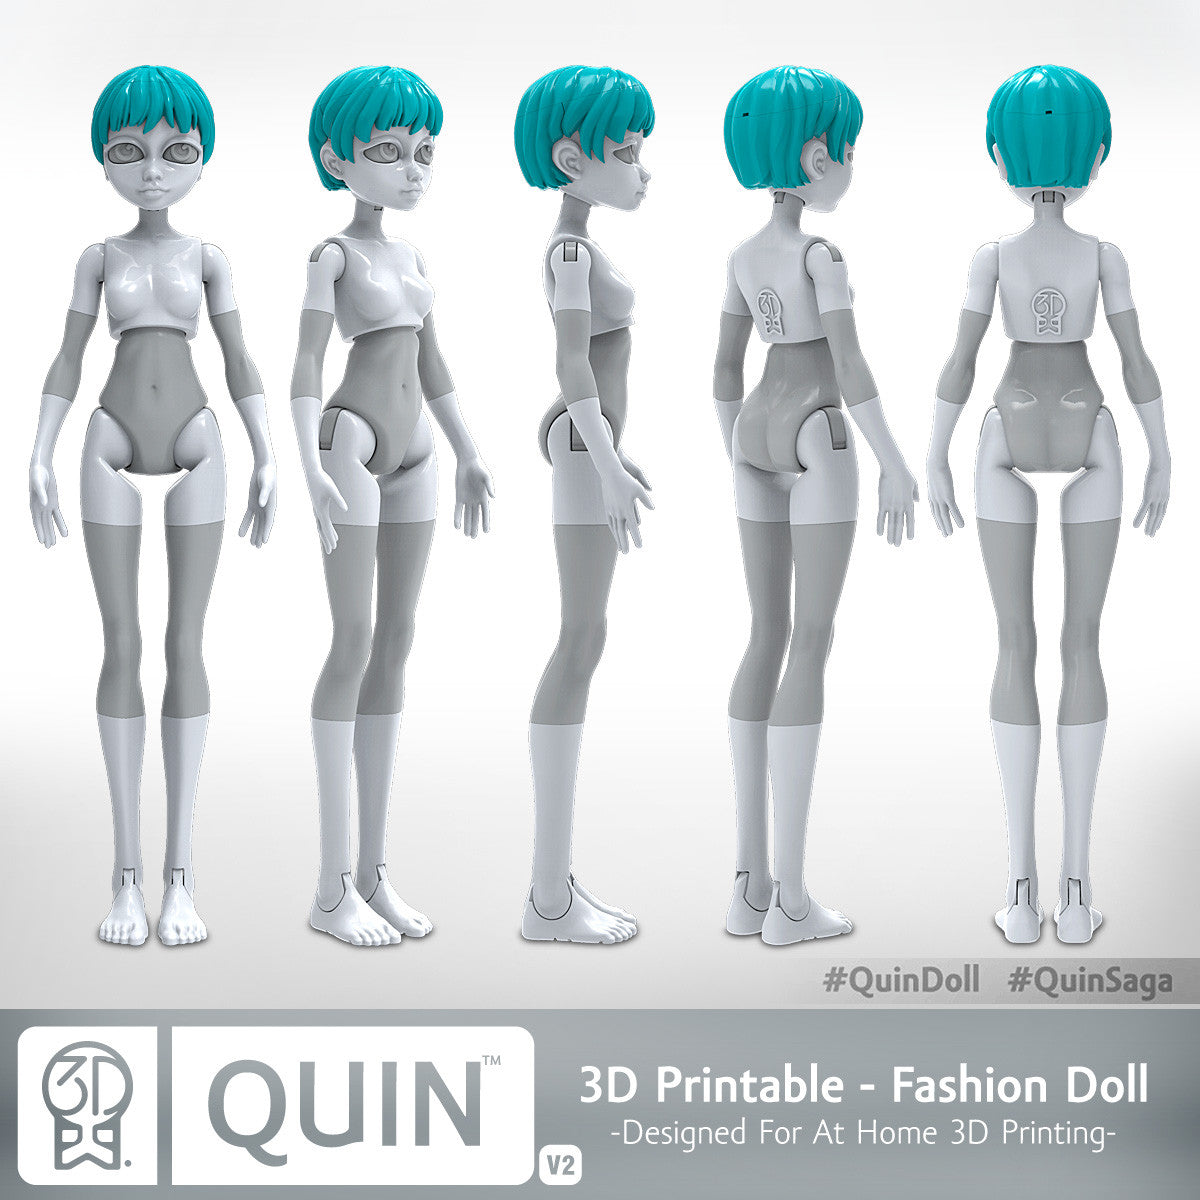 Quin, The 3D-Printable Doll